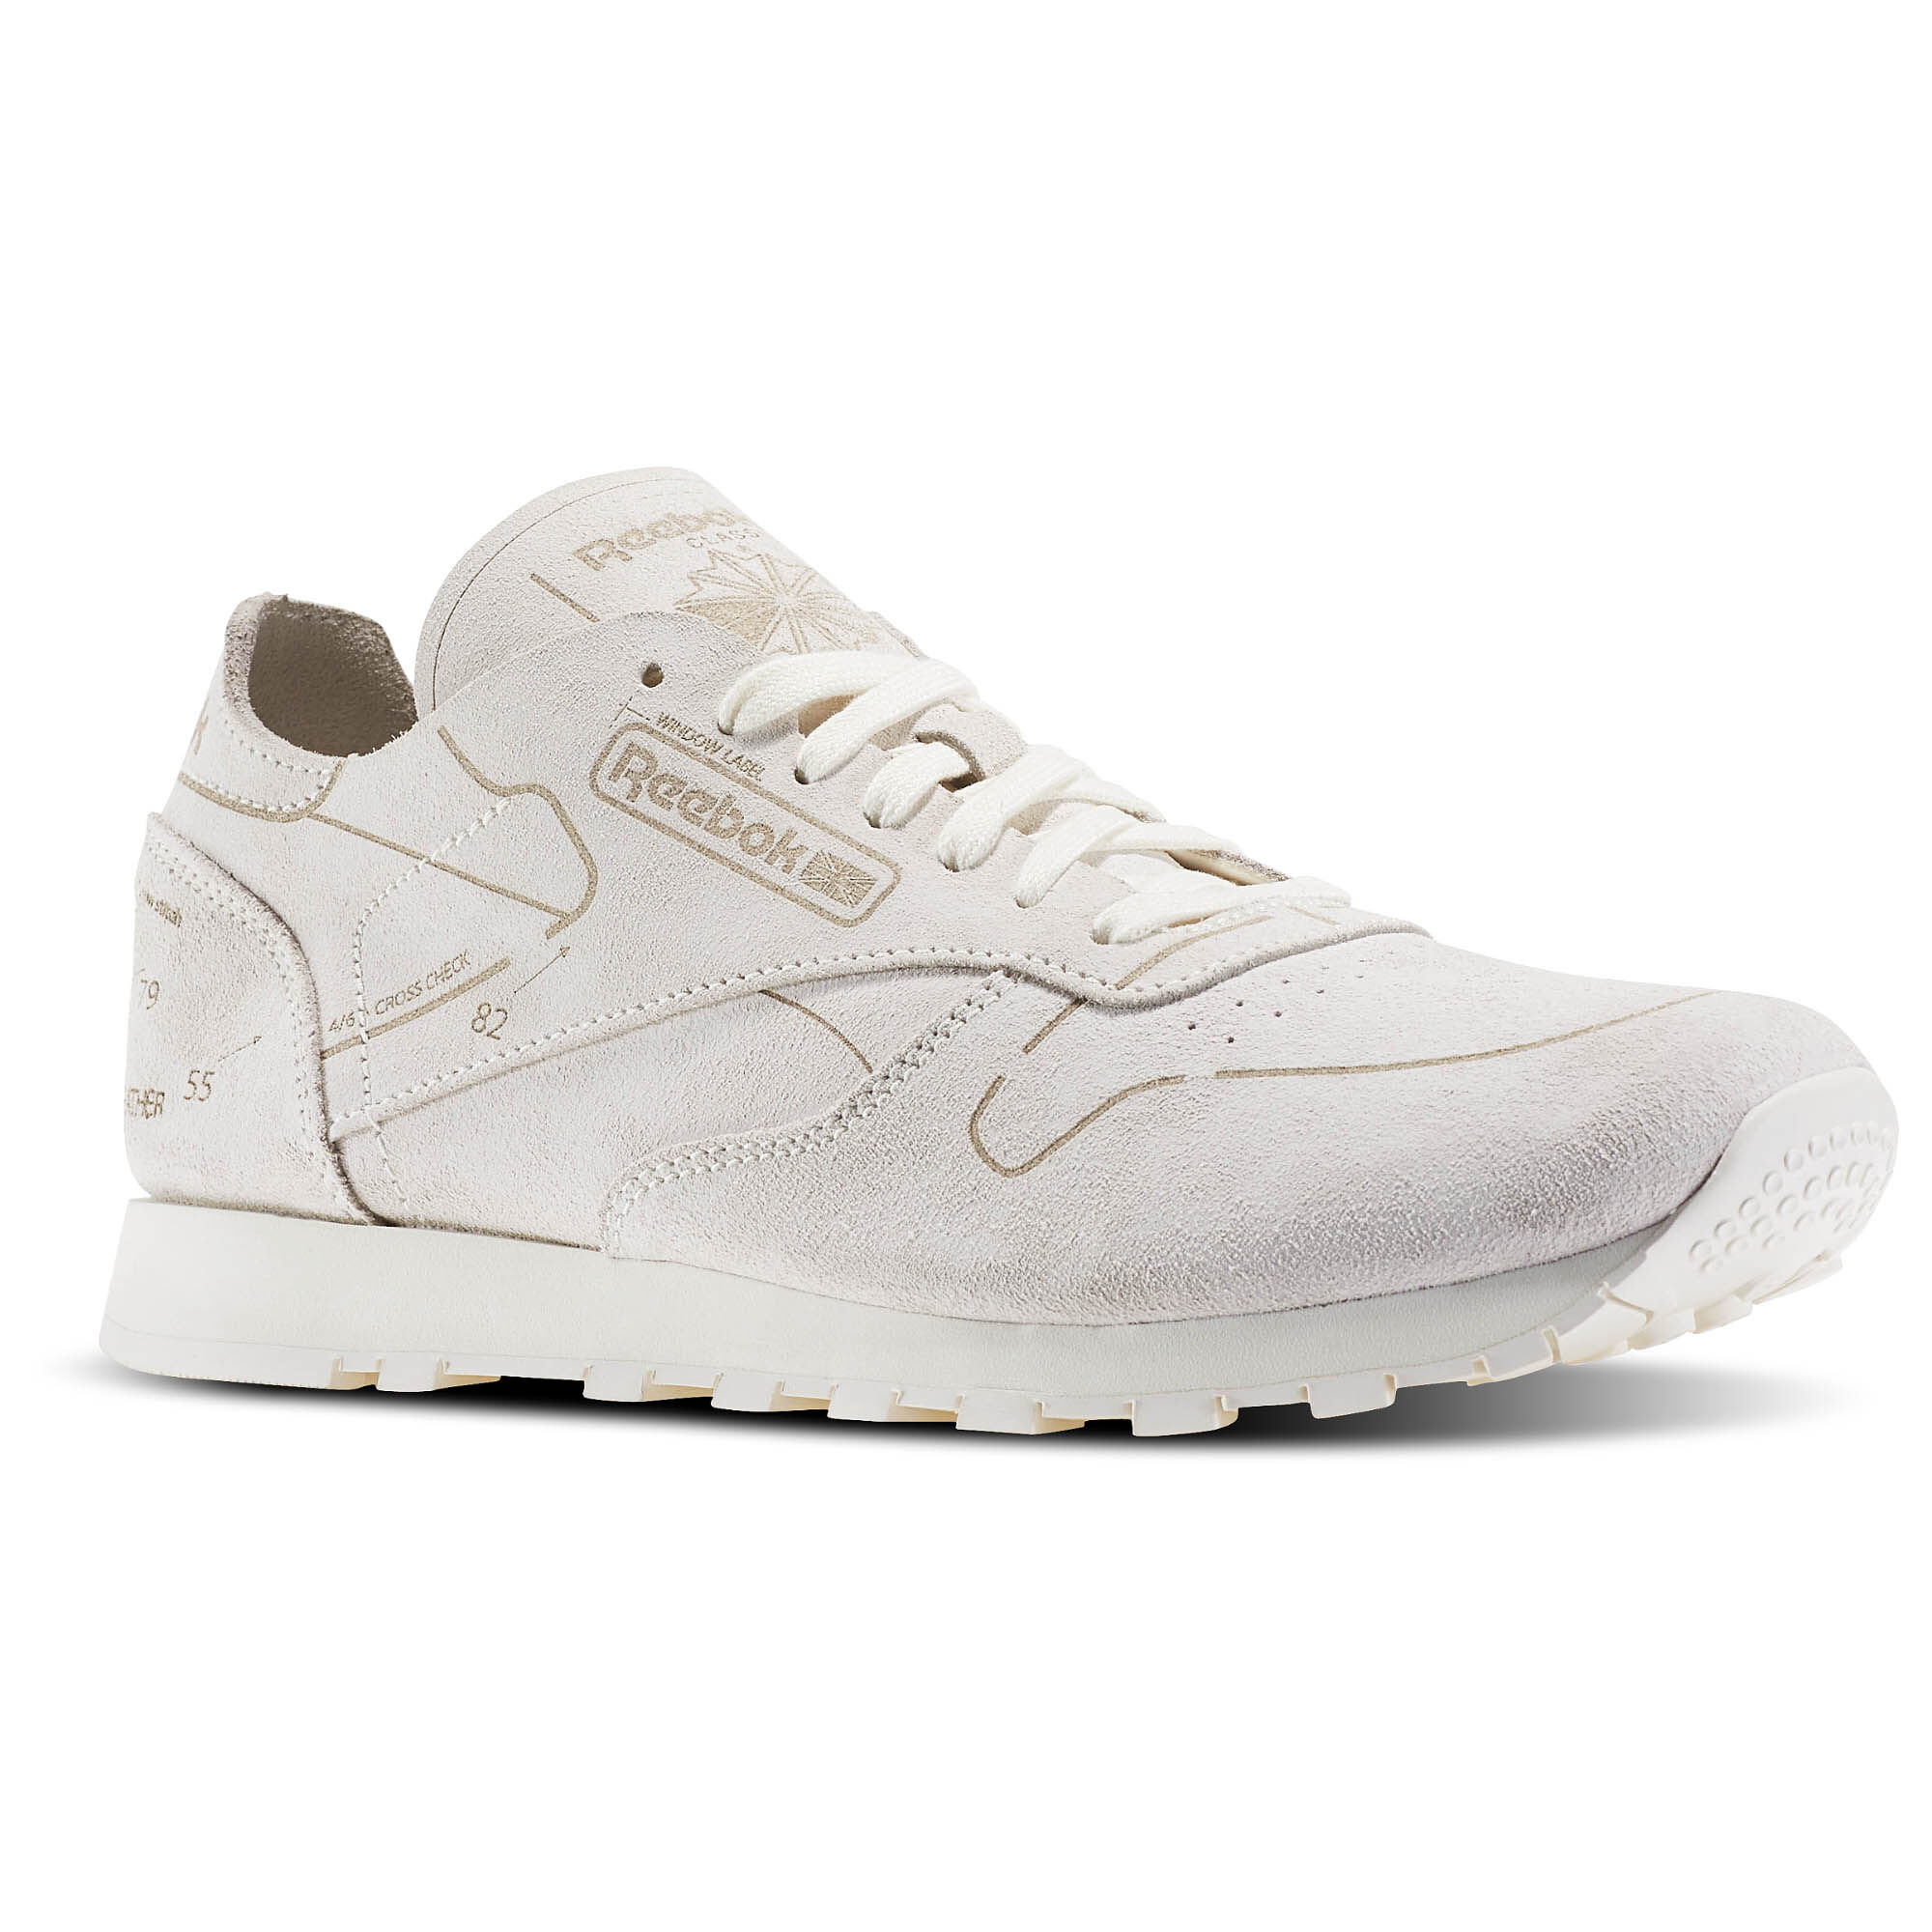 6a94c1a7352 ... Grey 6394 Reebok - Classic Leather HMG Classic White BD1964 ...